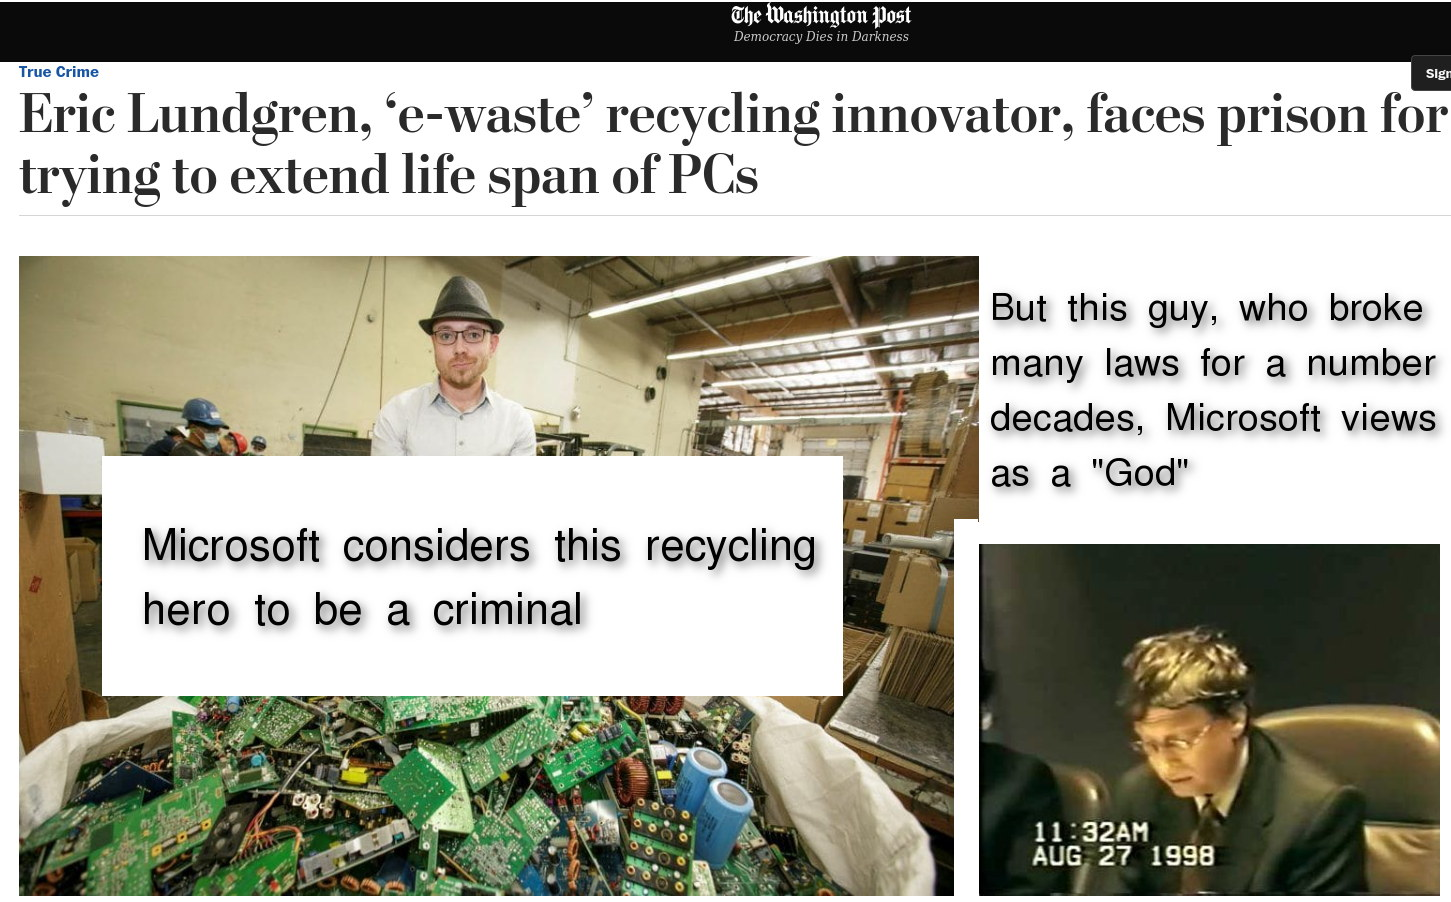 Microsoft considers this recycling hero to be a criminal. But this guy, who broke many laws for a number of decades, Microsoft views as a 'God'.